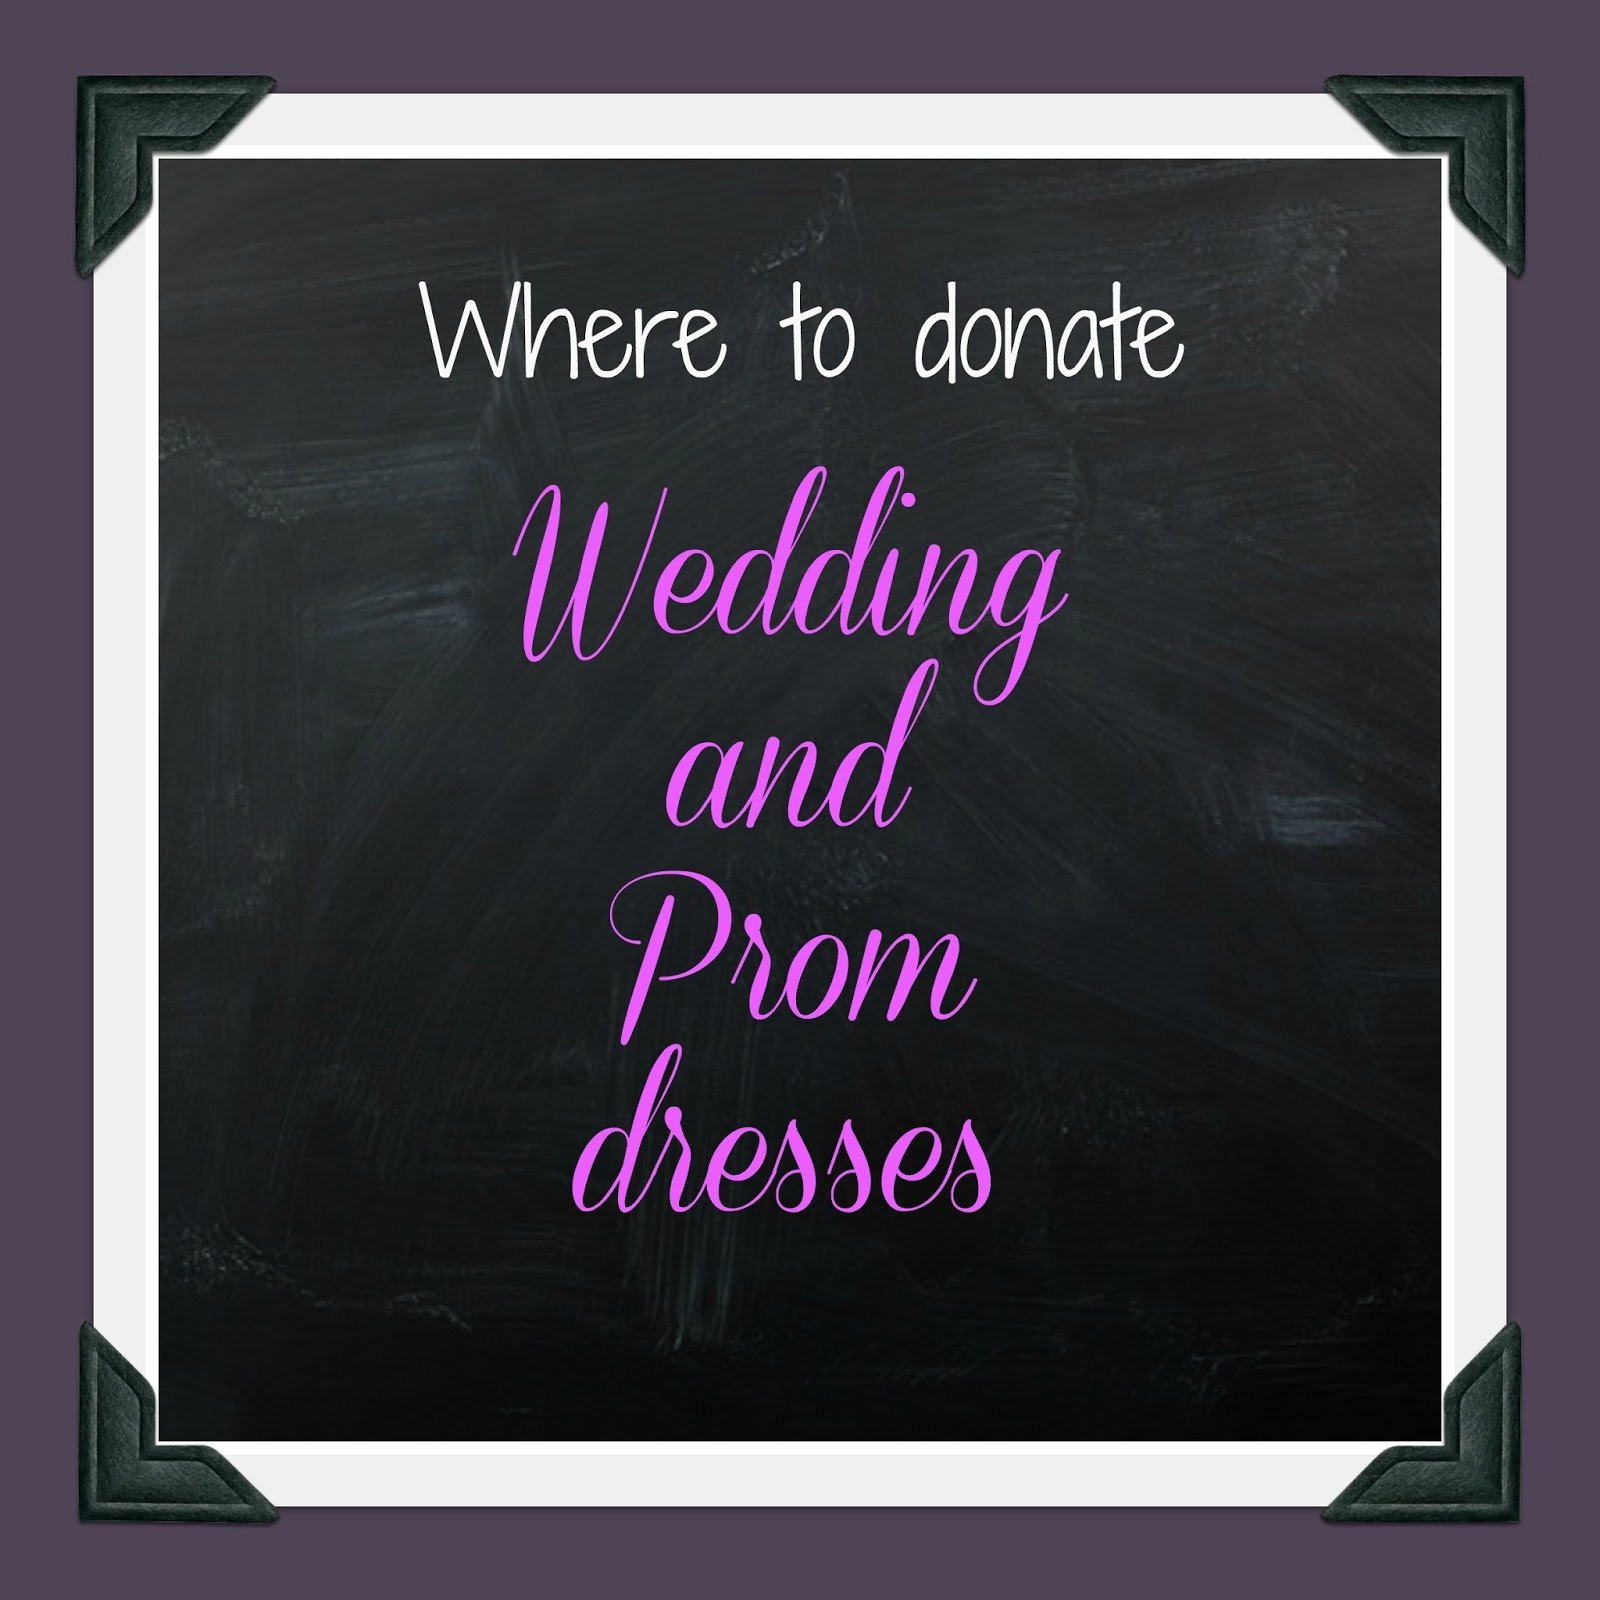 Simply Organized of NWA: Where to donate - Wedding and Prom Dresses